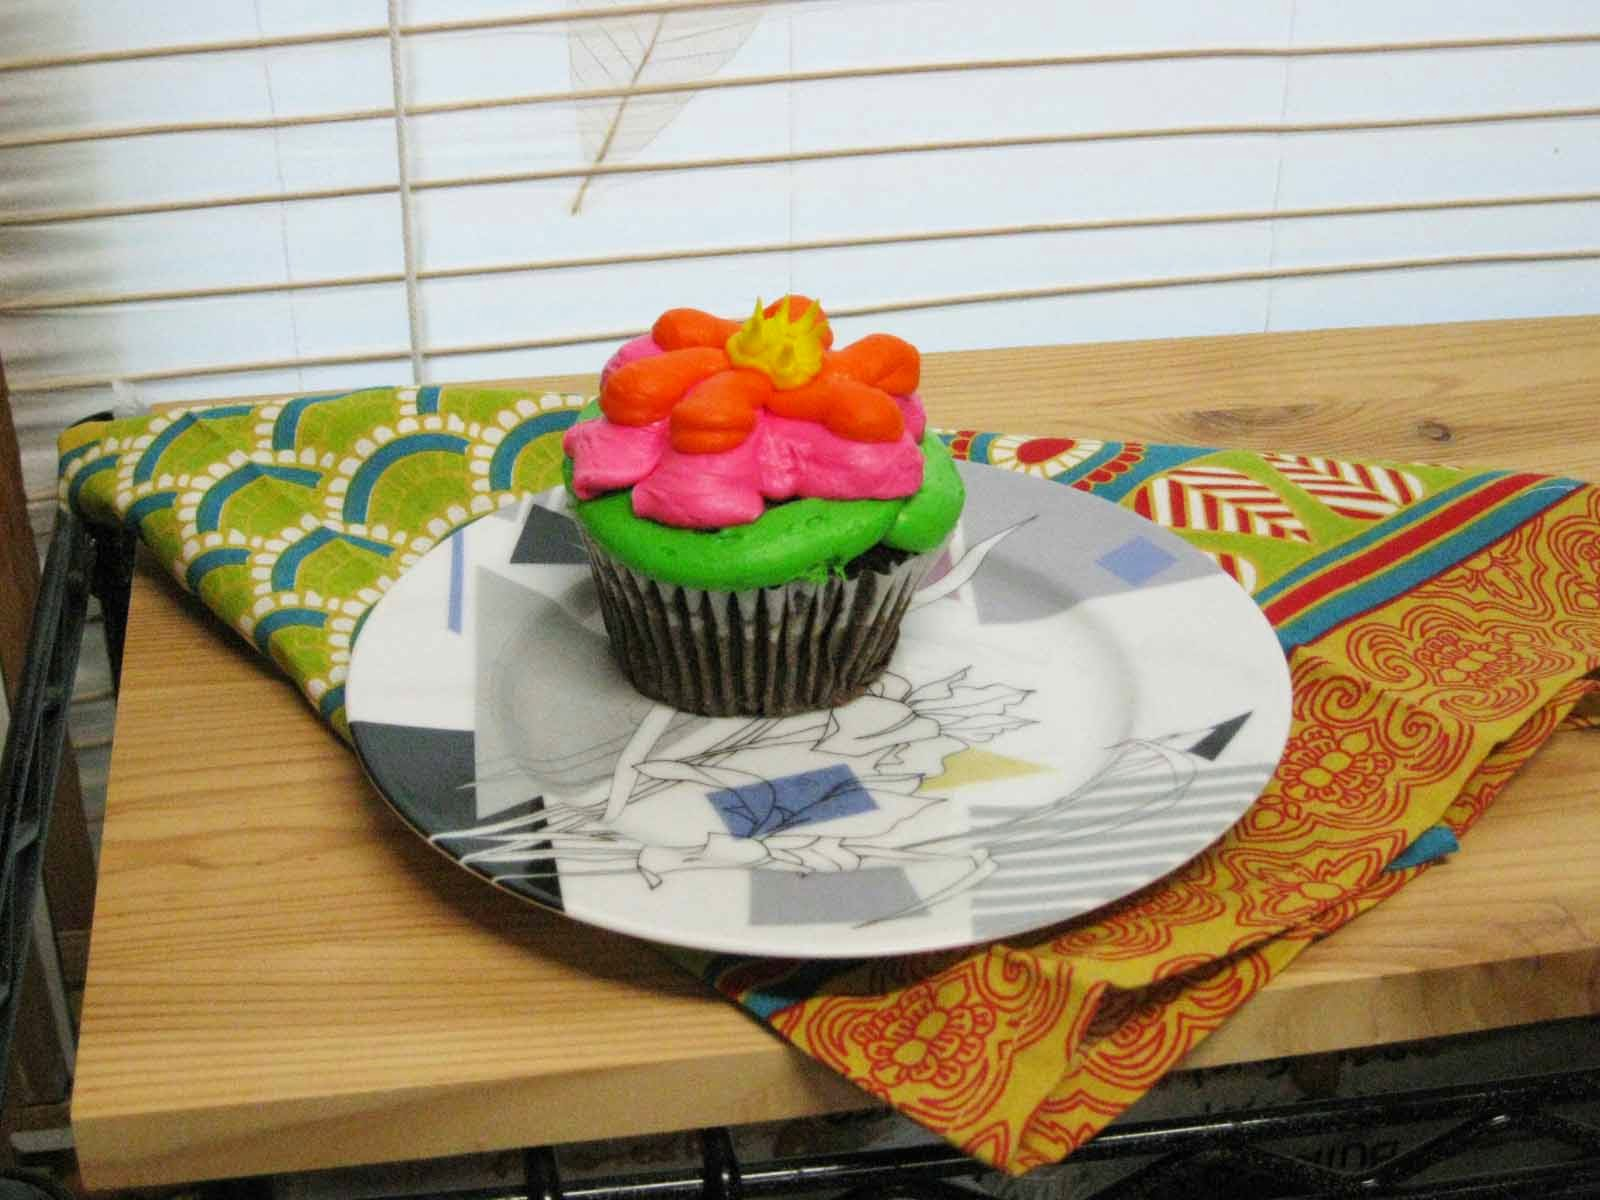 colorful cupcake with patterned napkin and plate